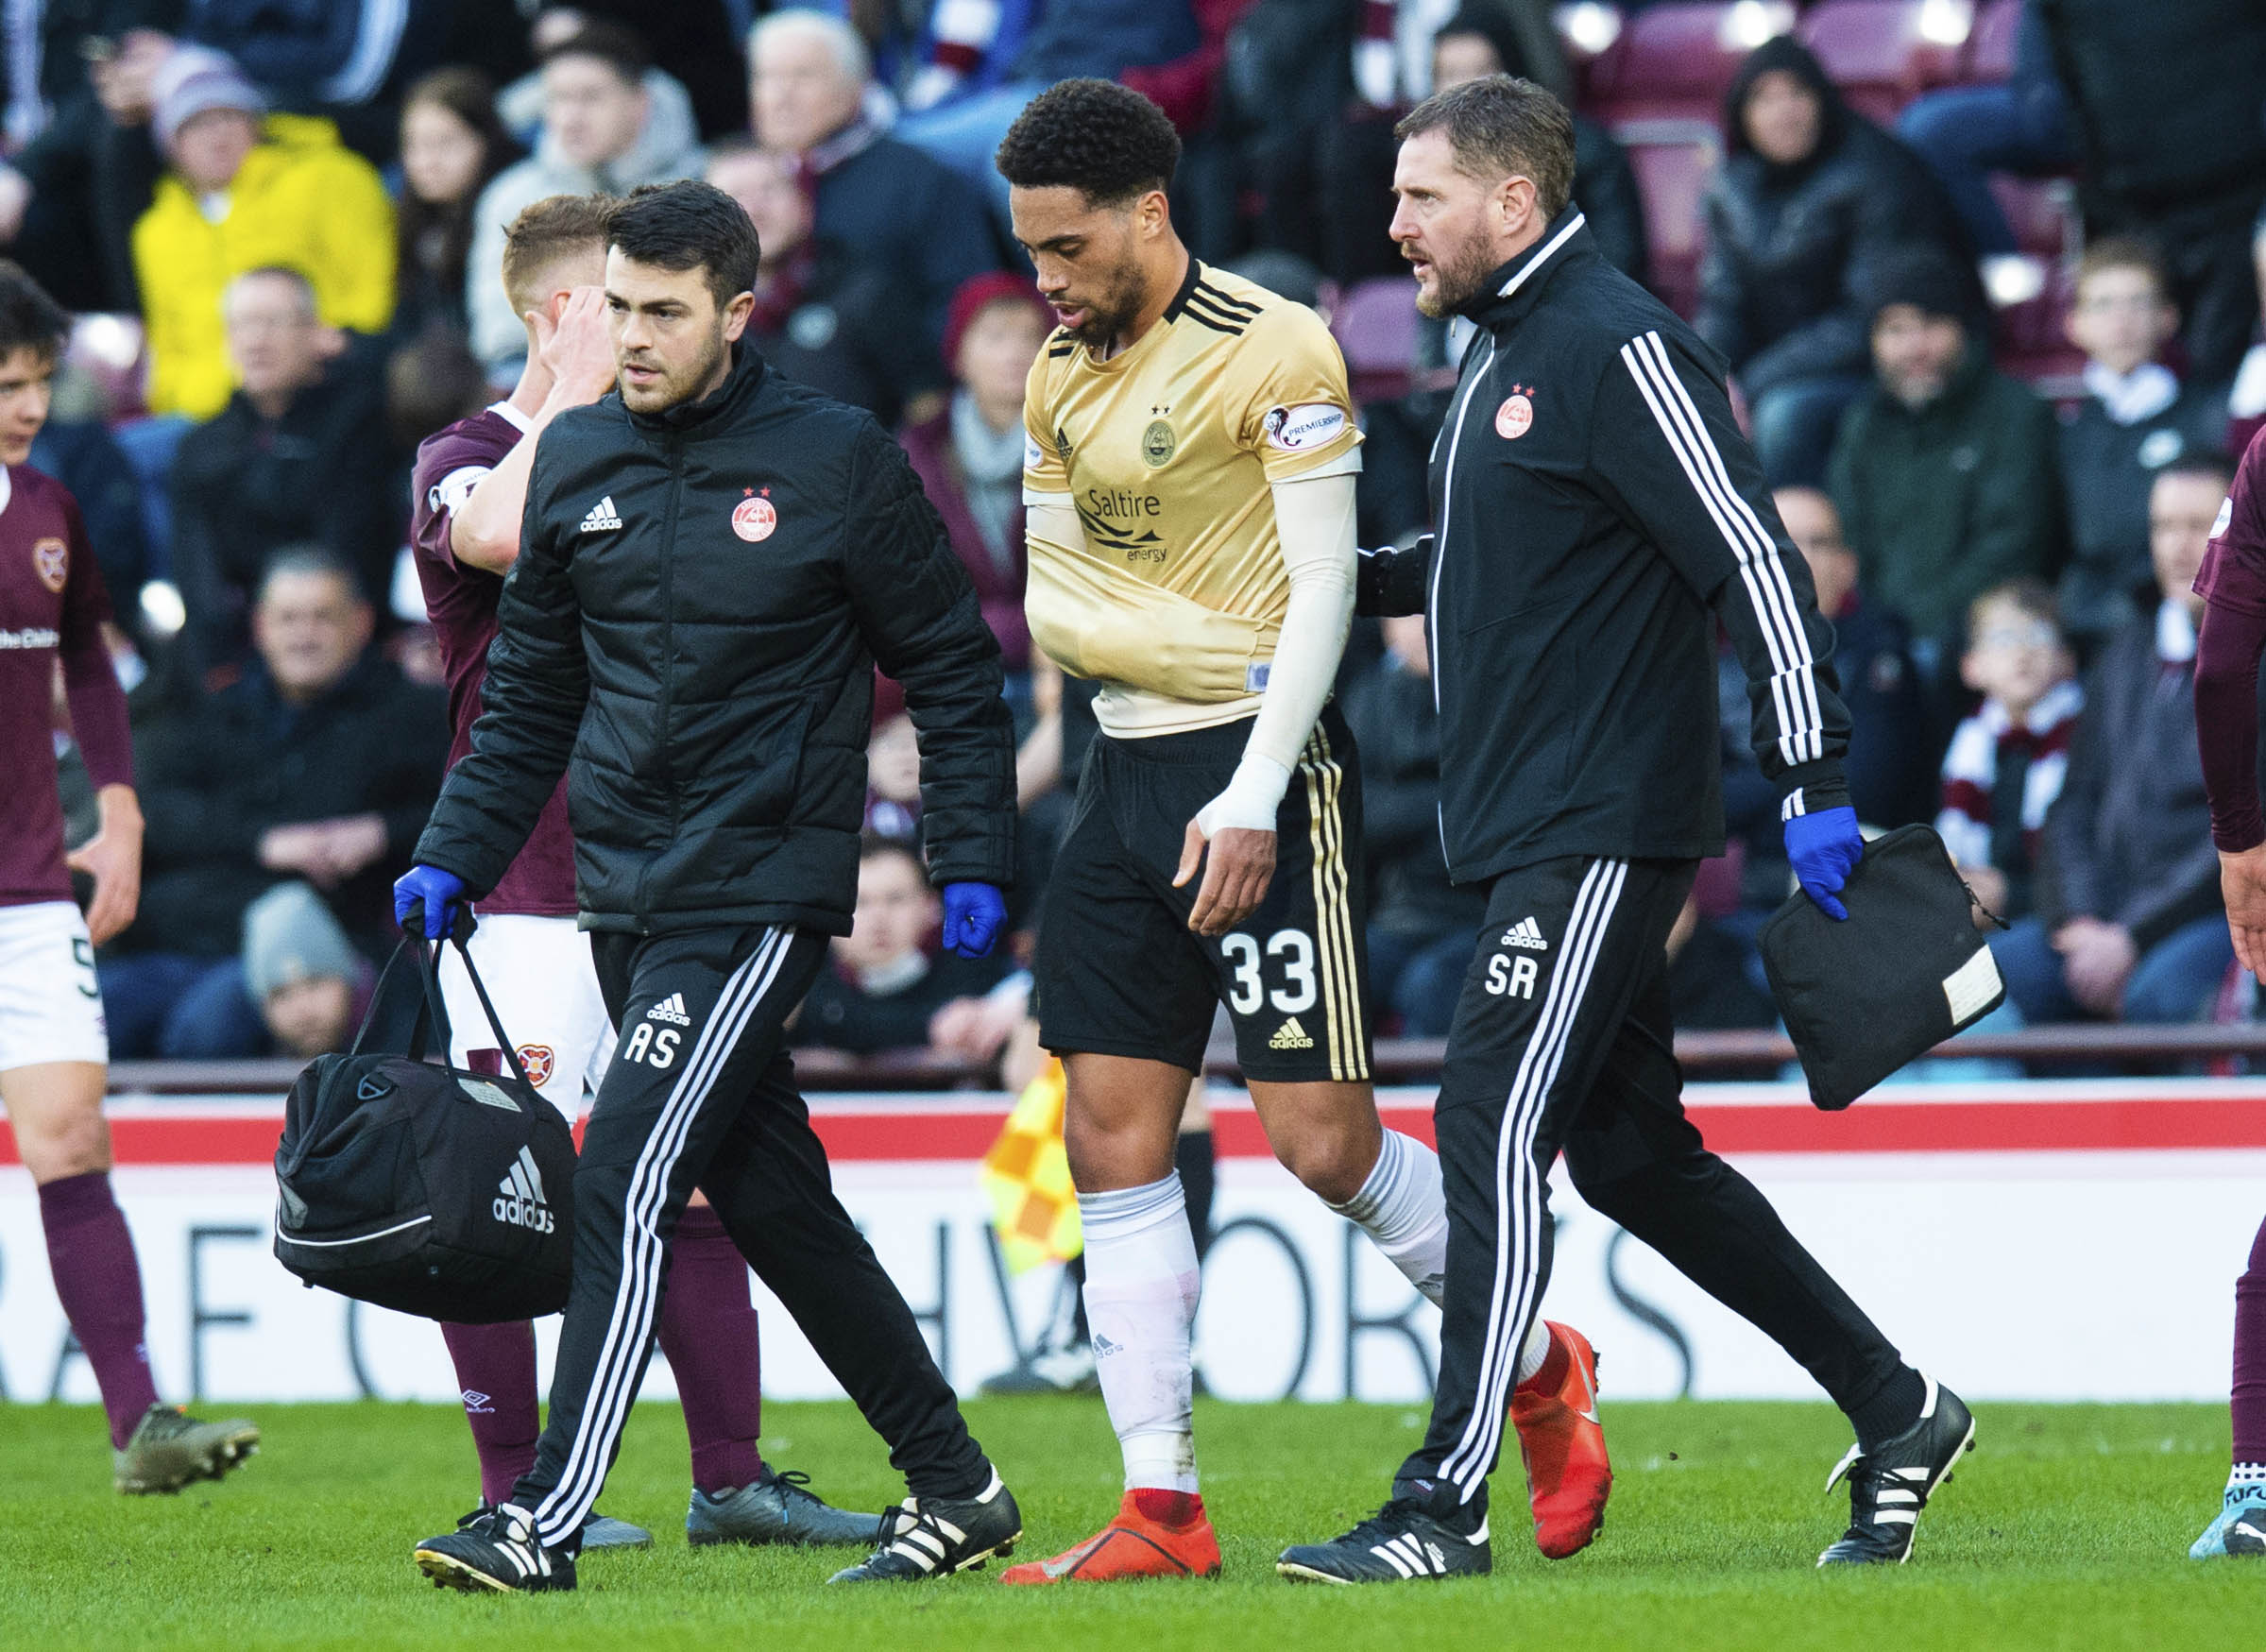 Aberdeen's Zak Vyner goes off with a shoulder injury in the 1-1 draw at Hearts.